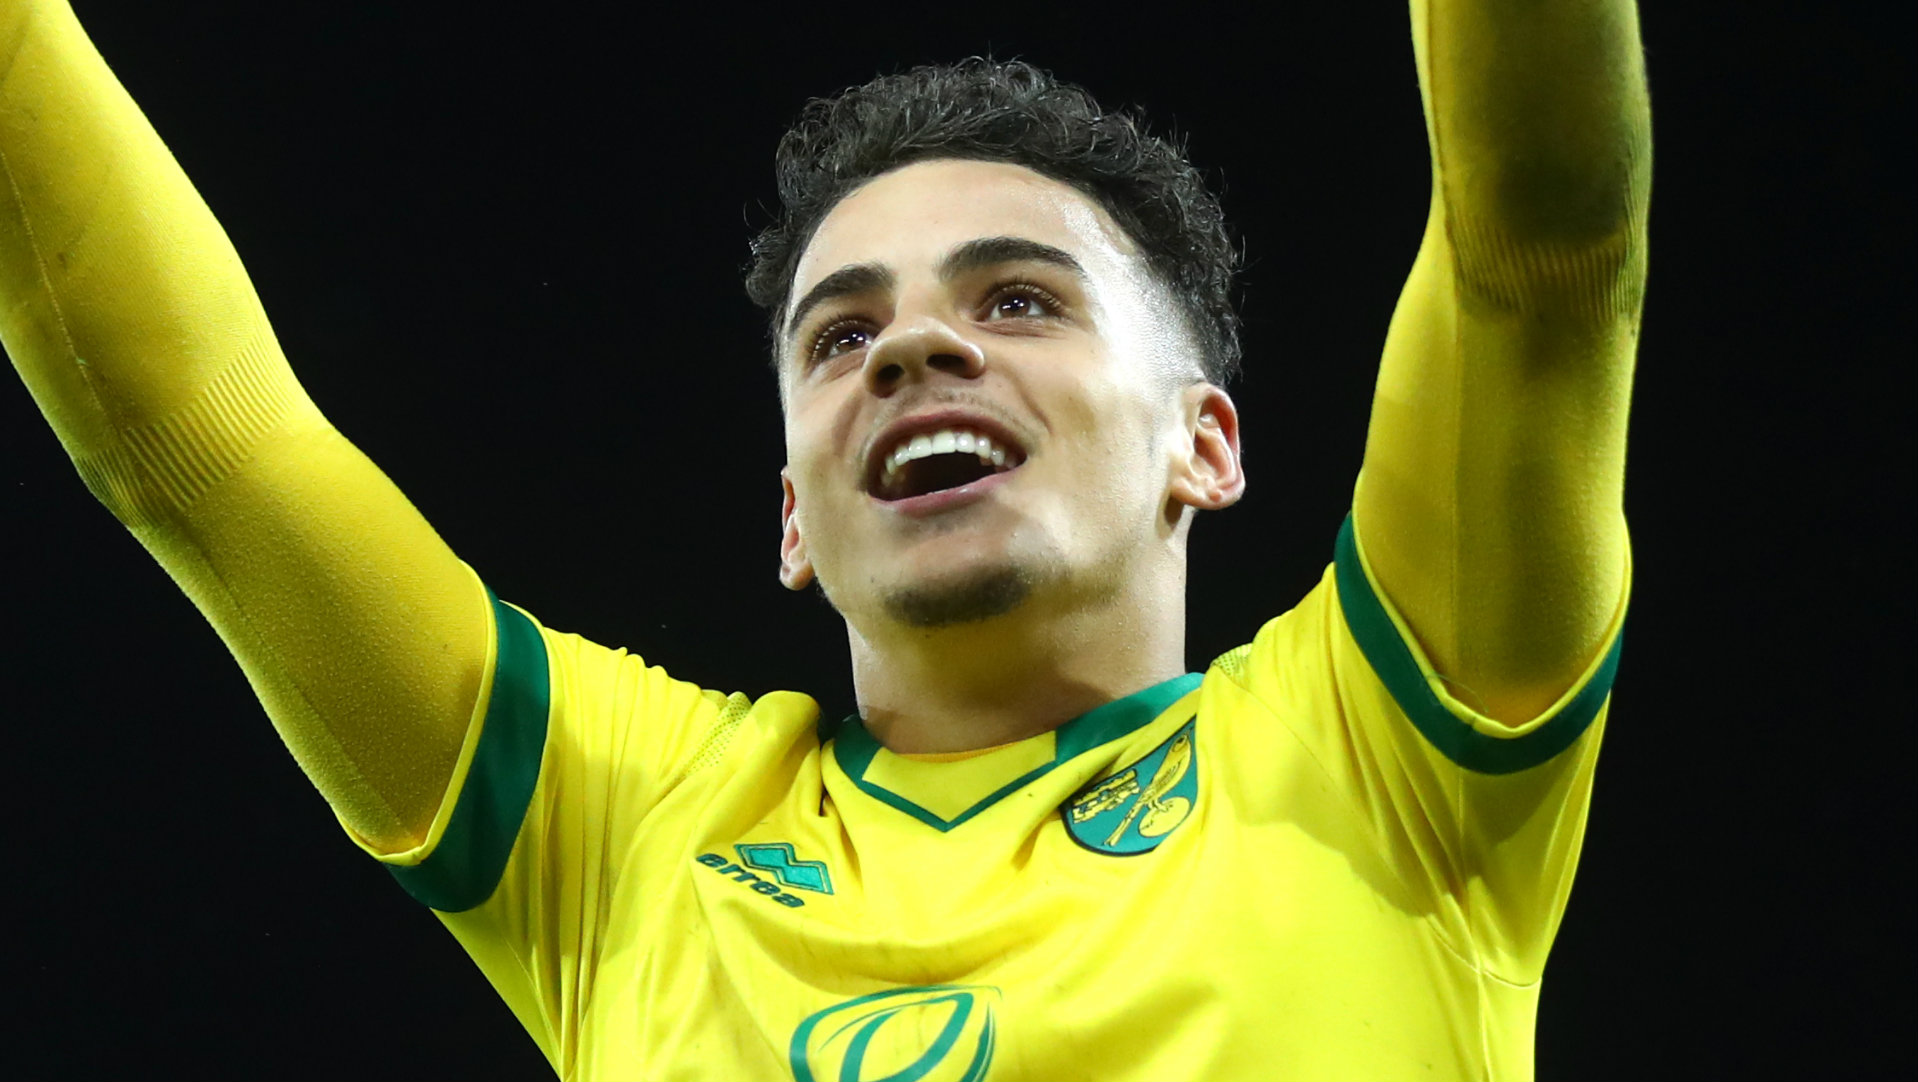 Transfer news and rumours LIVE: Everton hope to beat Man Utd and Barcelona to £35m transfer target